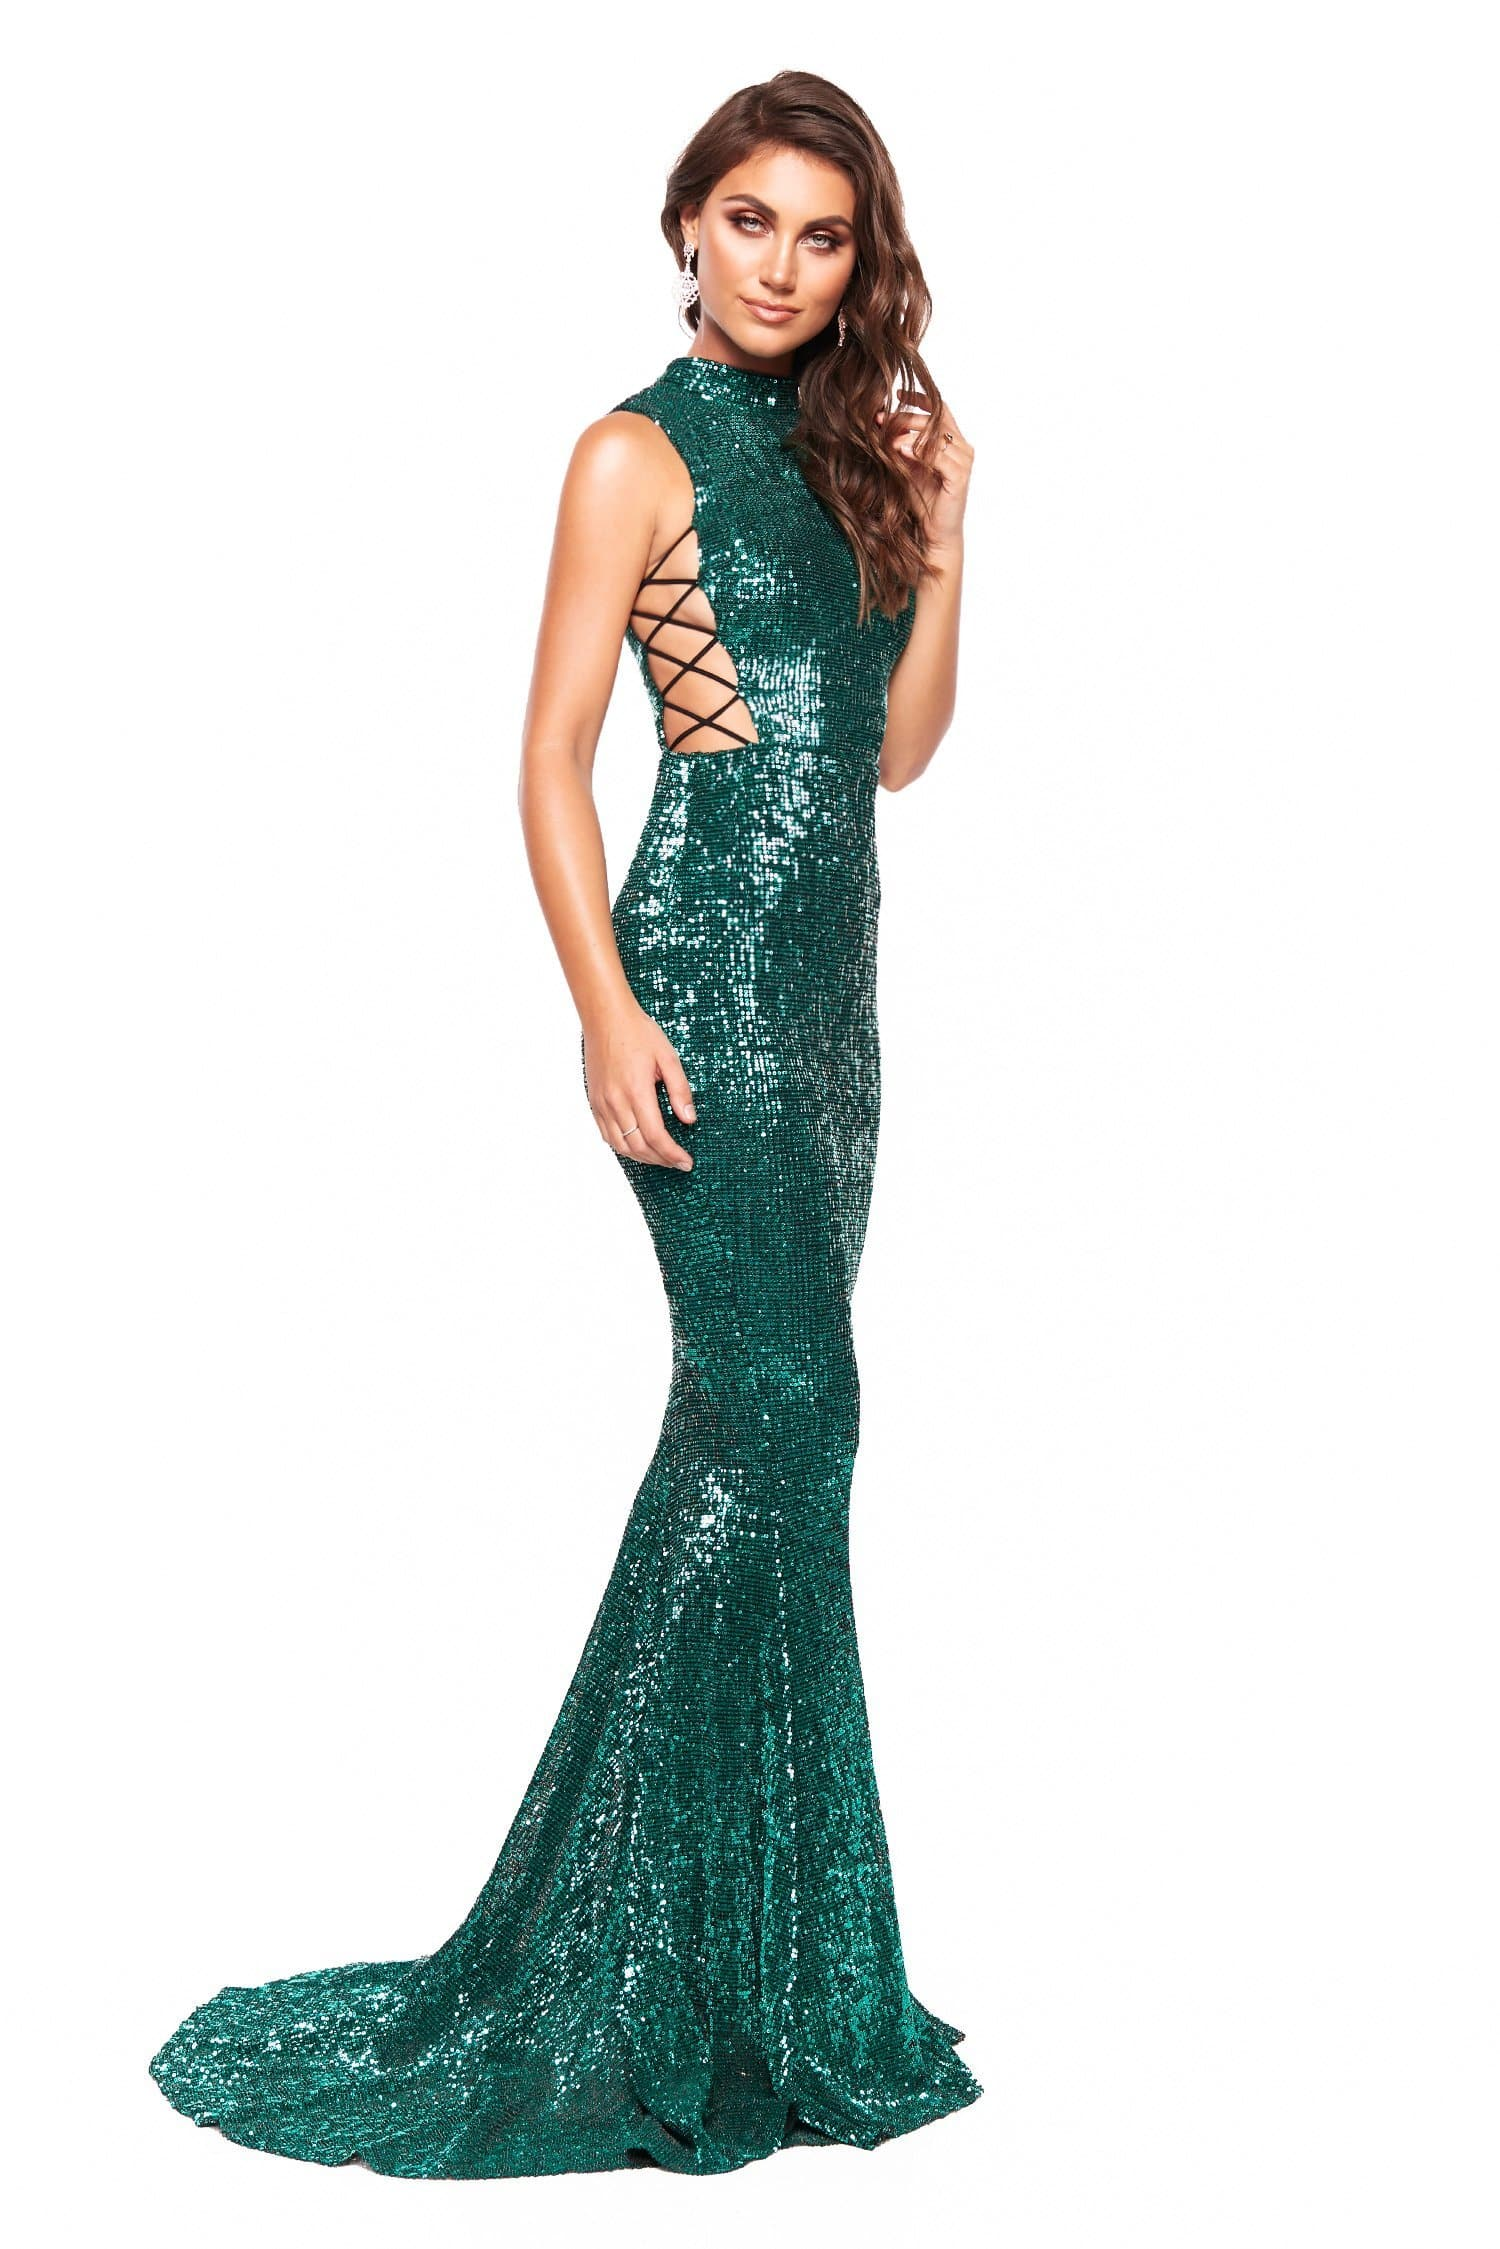 16cd4d7db17 A N Harper - Emerald Sequin High Neck Gown with Criss-Cross Sides ...